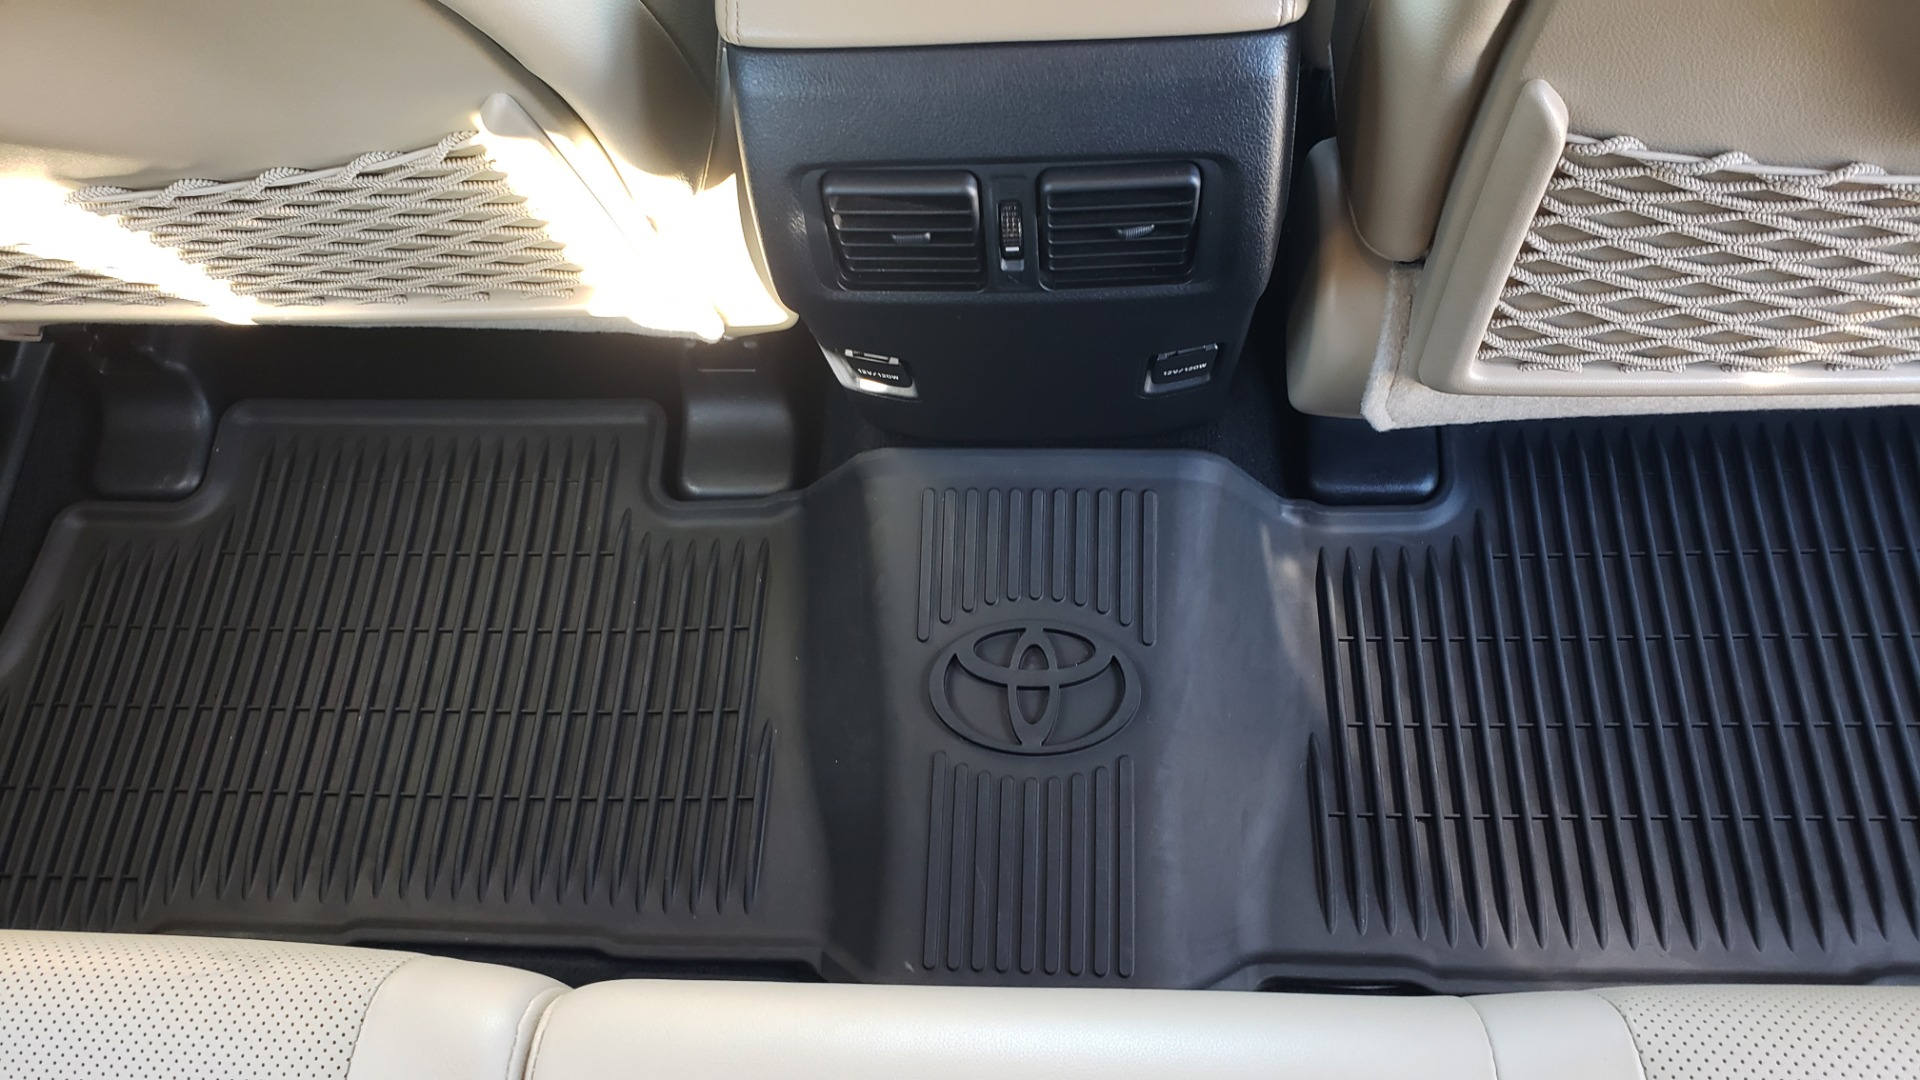 Used 2018 Toyota 4RUNNER LIMITED 4X4 / 4.0L V6 / AUTO / NAV / SUNROOF / JBL AUDIO / REARVIEW for sale Sold at Formula Imports in Charlotte NC 28227 82